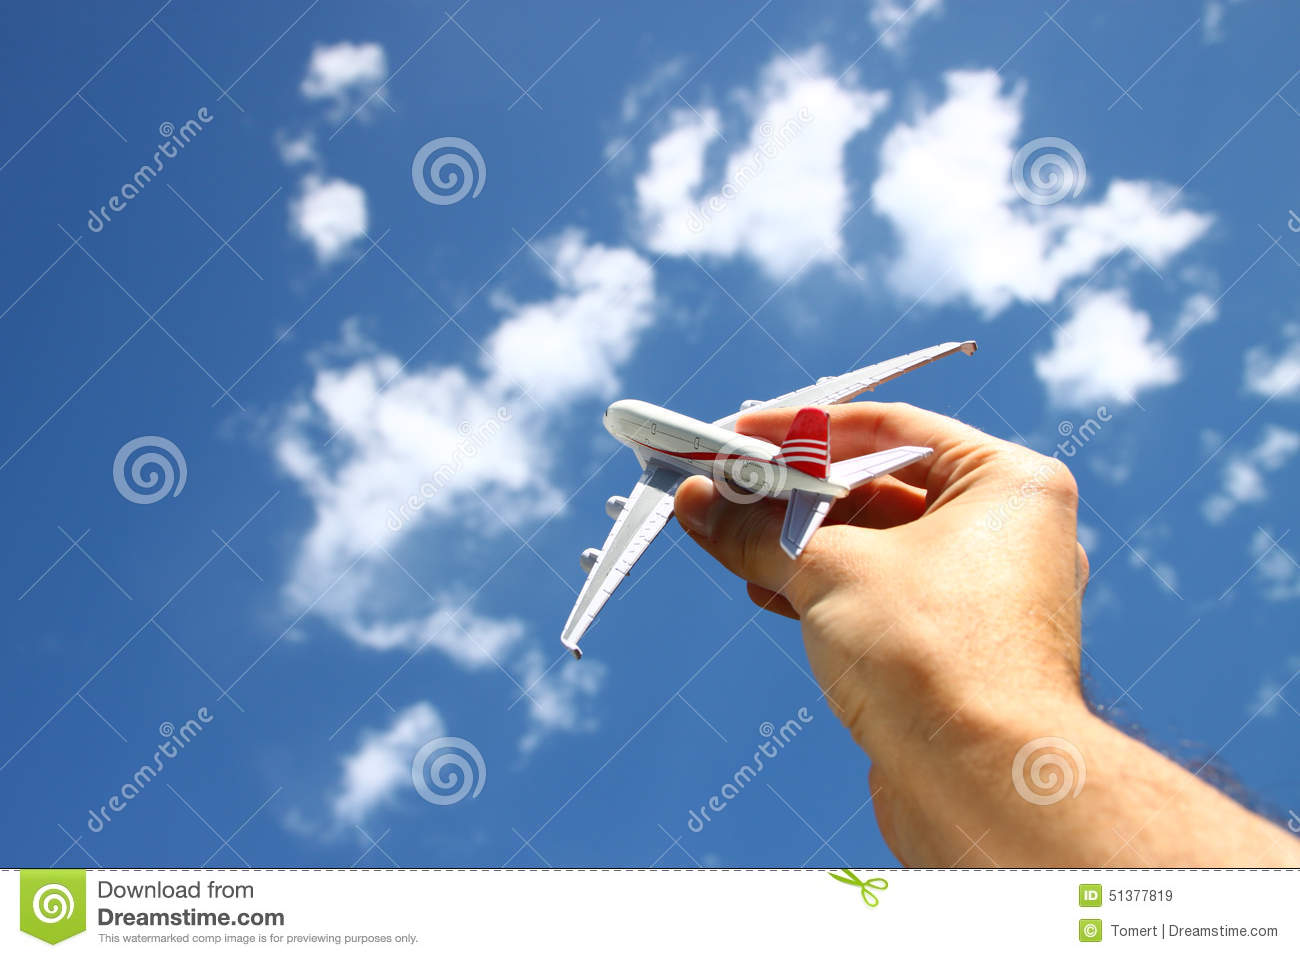 Close up photo of mans hand holding toy airplane against blue sky with clouds. filtered image